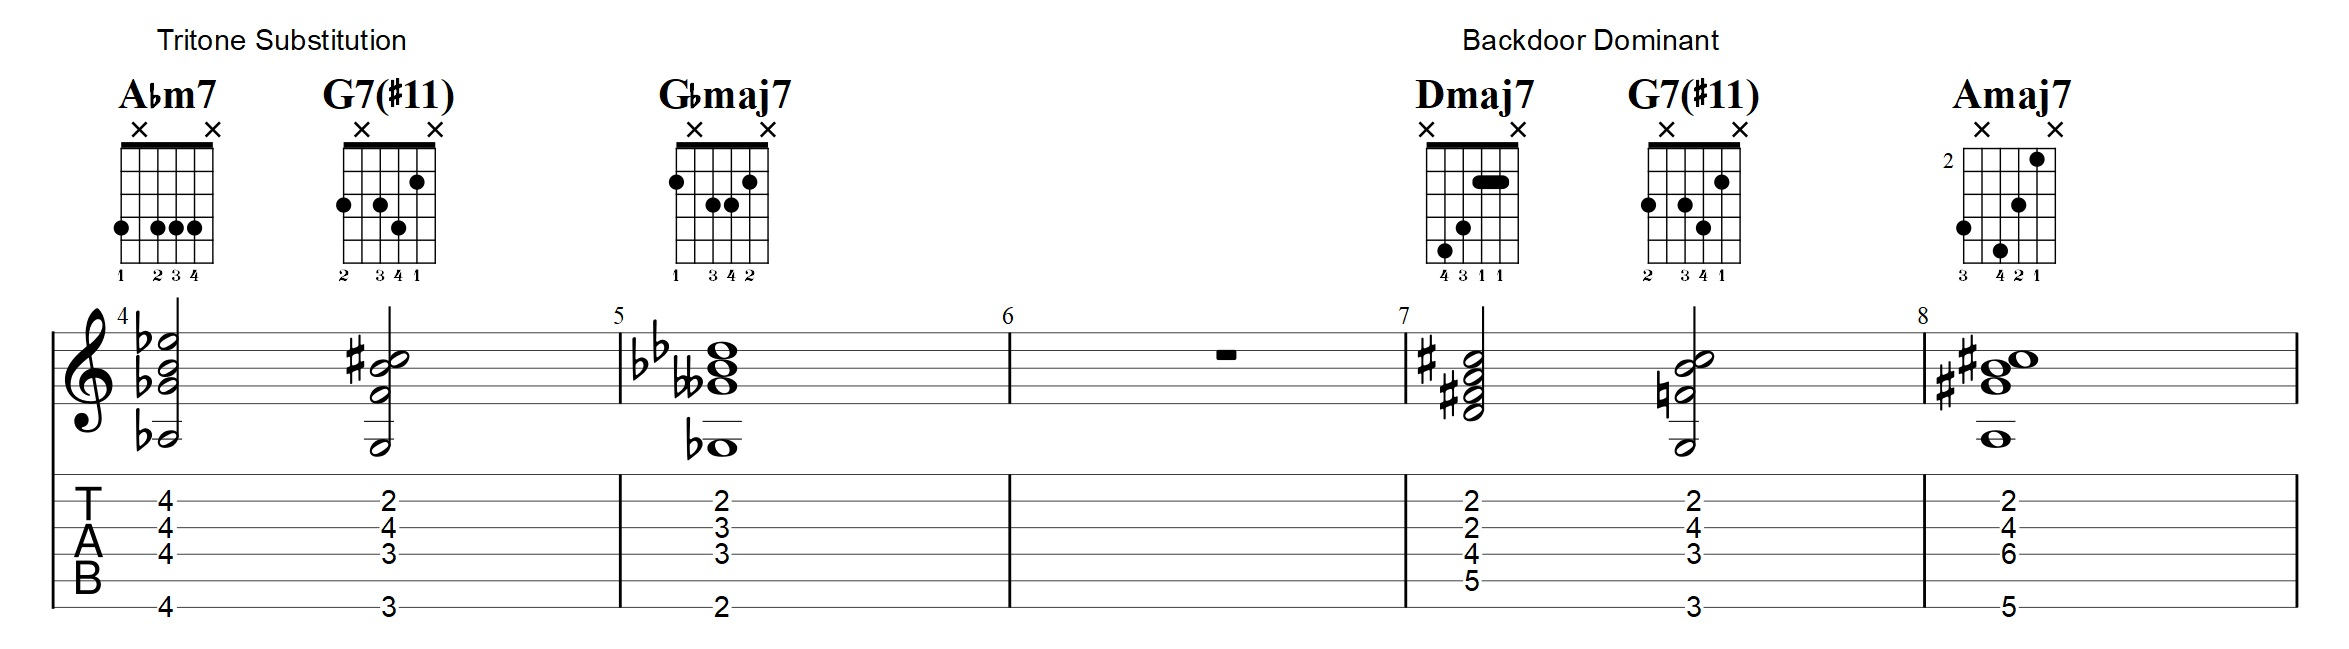 Lydian Dominant Arpeggio Archives Jens Larsen The Chord Symble A7 Above A Bar It Means We Have To Play Second Example In That Line Is Iv Bvii I Major Where G7 Backdoor Or